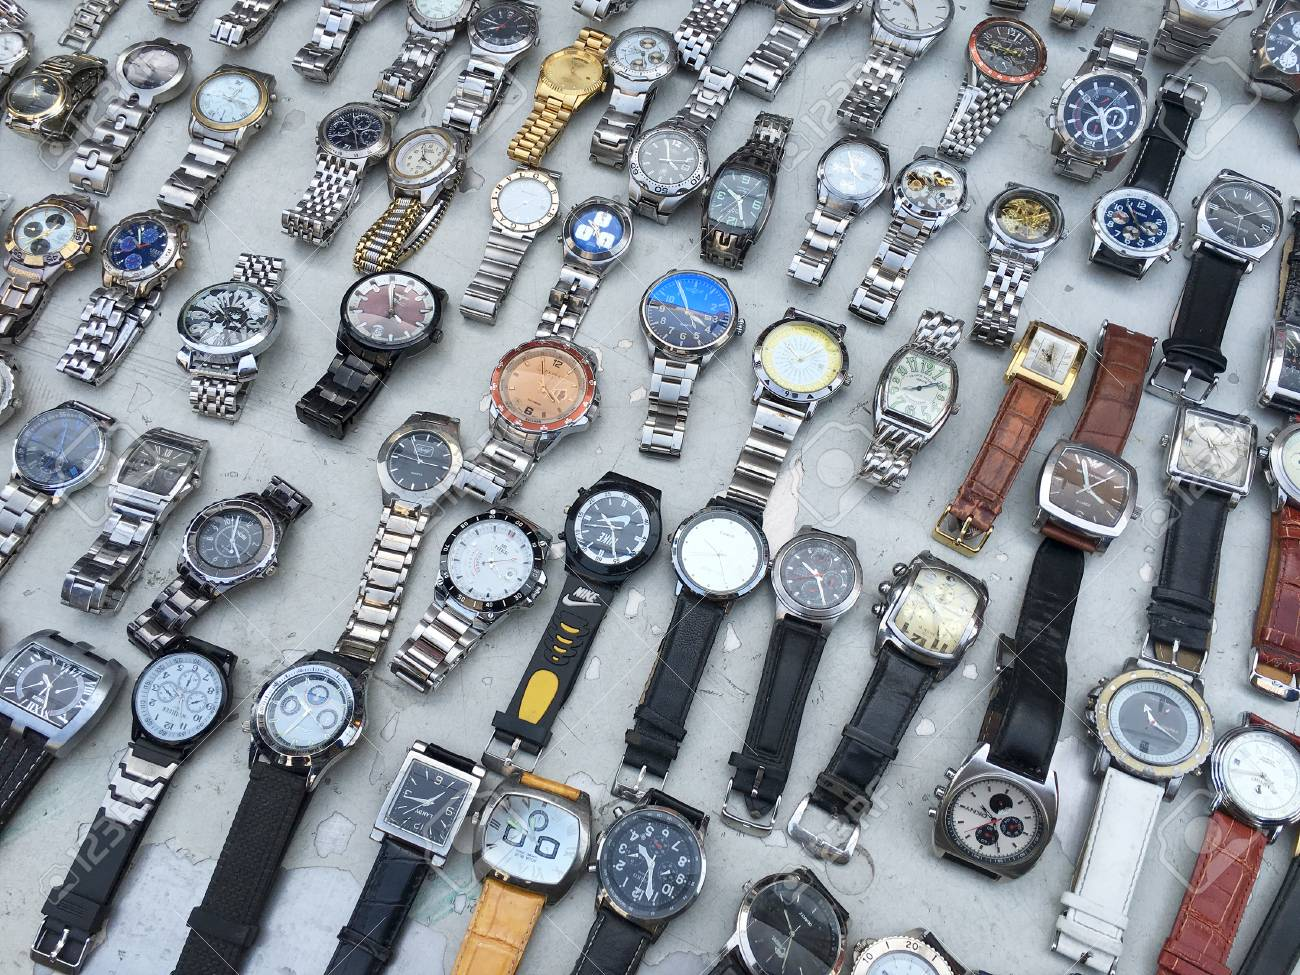 Second Hand Watches >> Seoul South Korea March 24 2017 A Lot Of Second Hand Watches